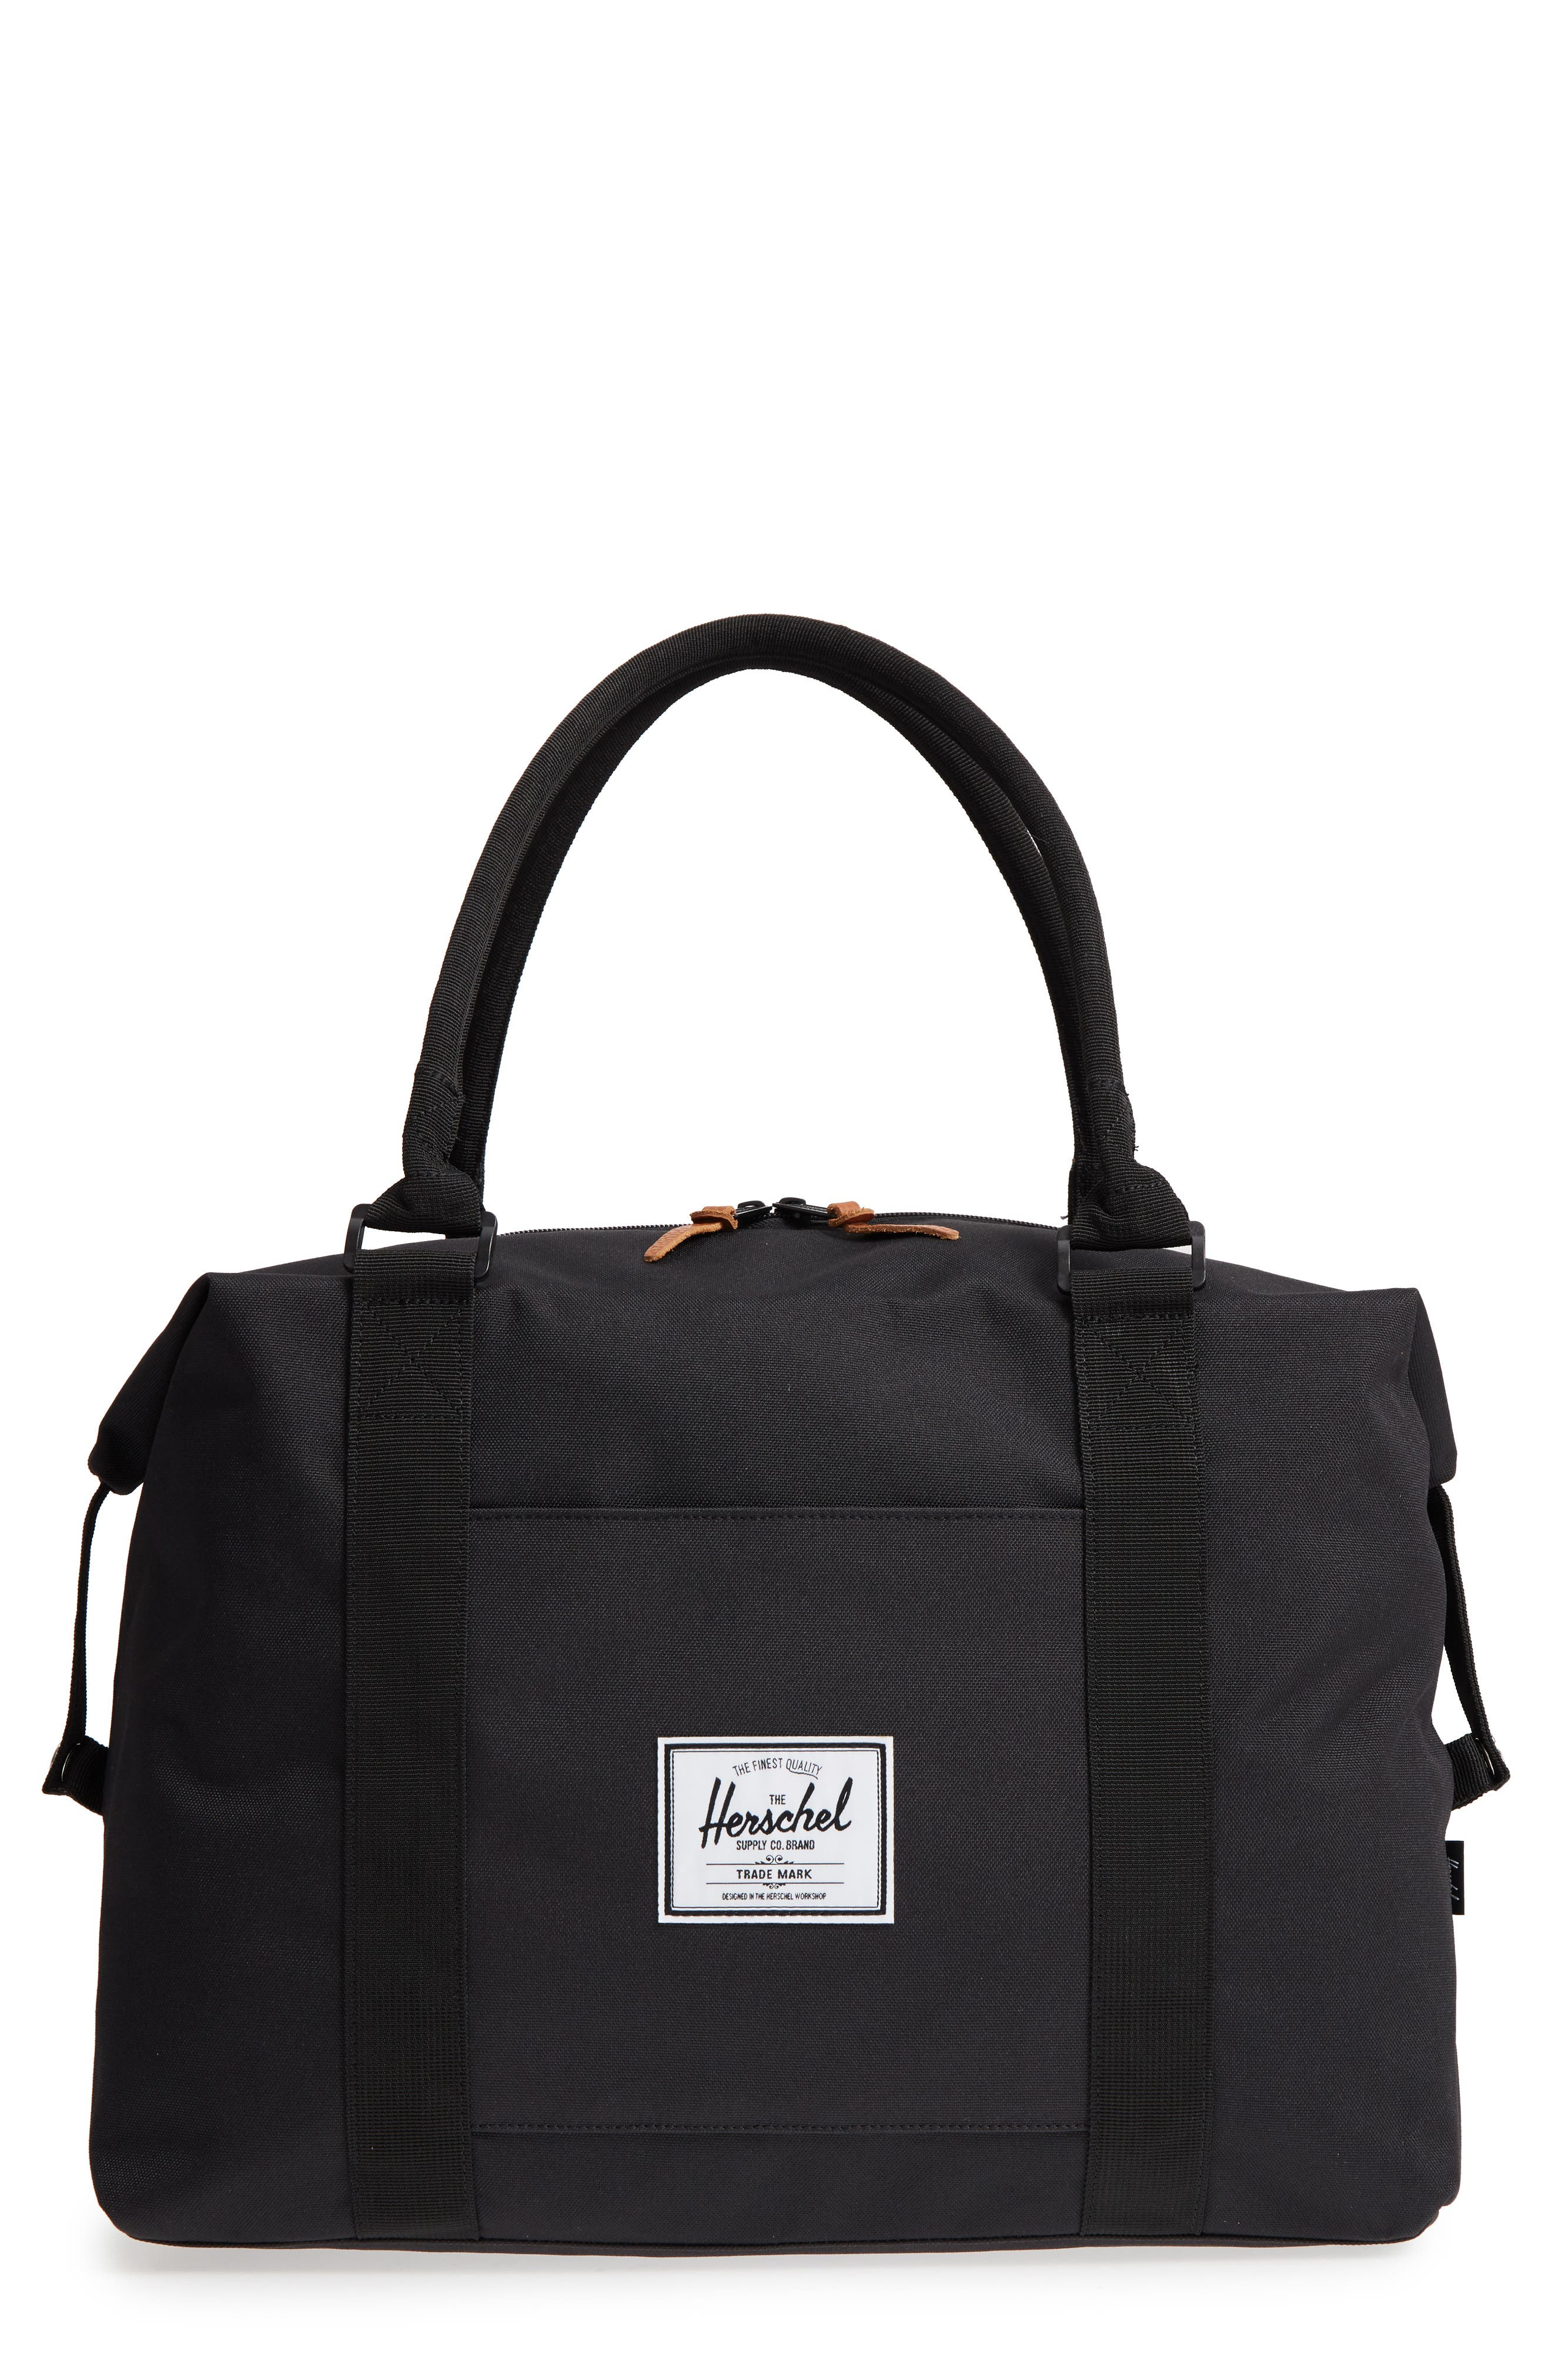 Strand Duffel Bag,                             Main thumbnail 1, color,                             001